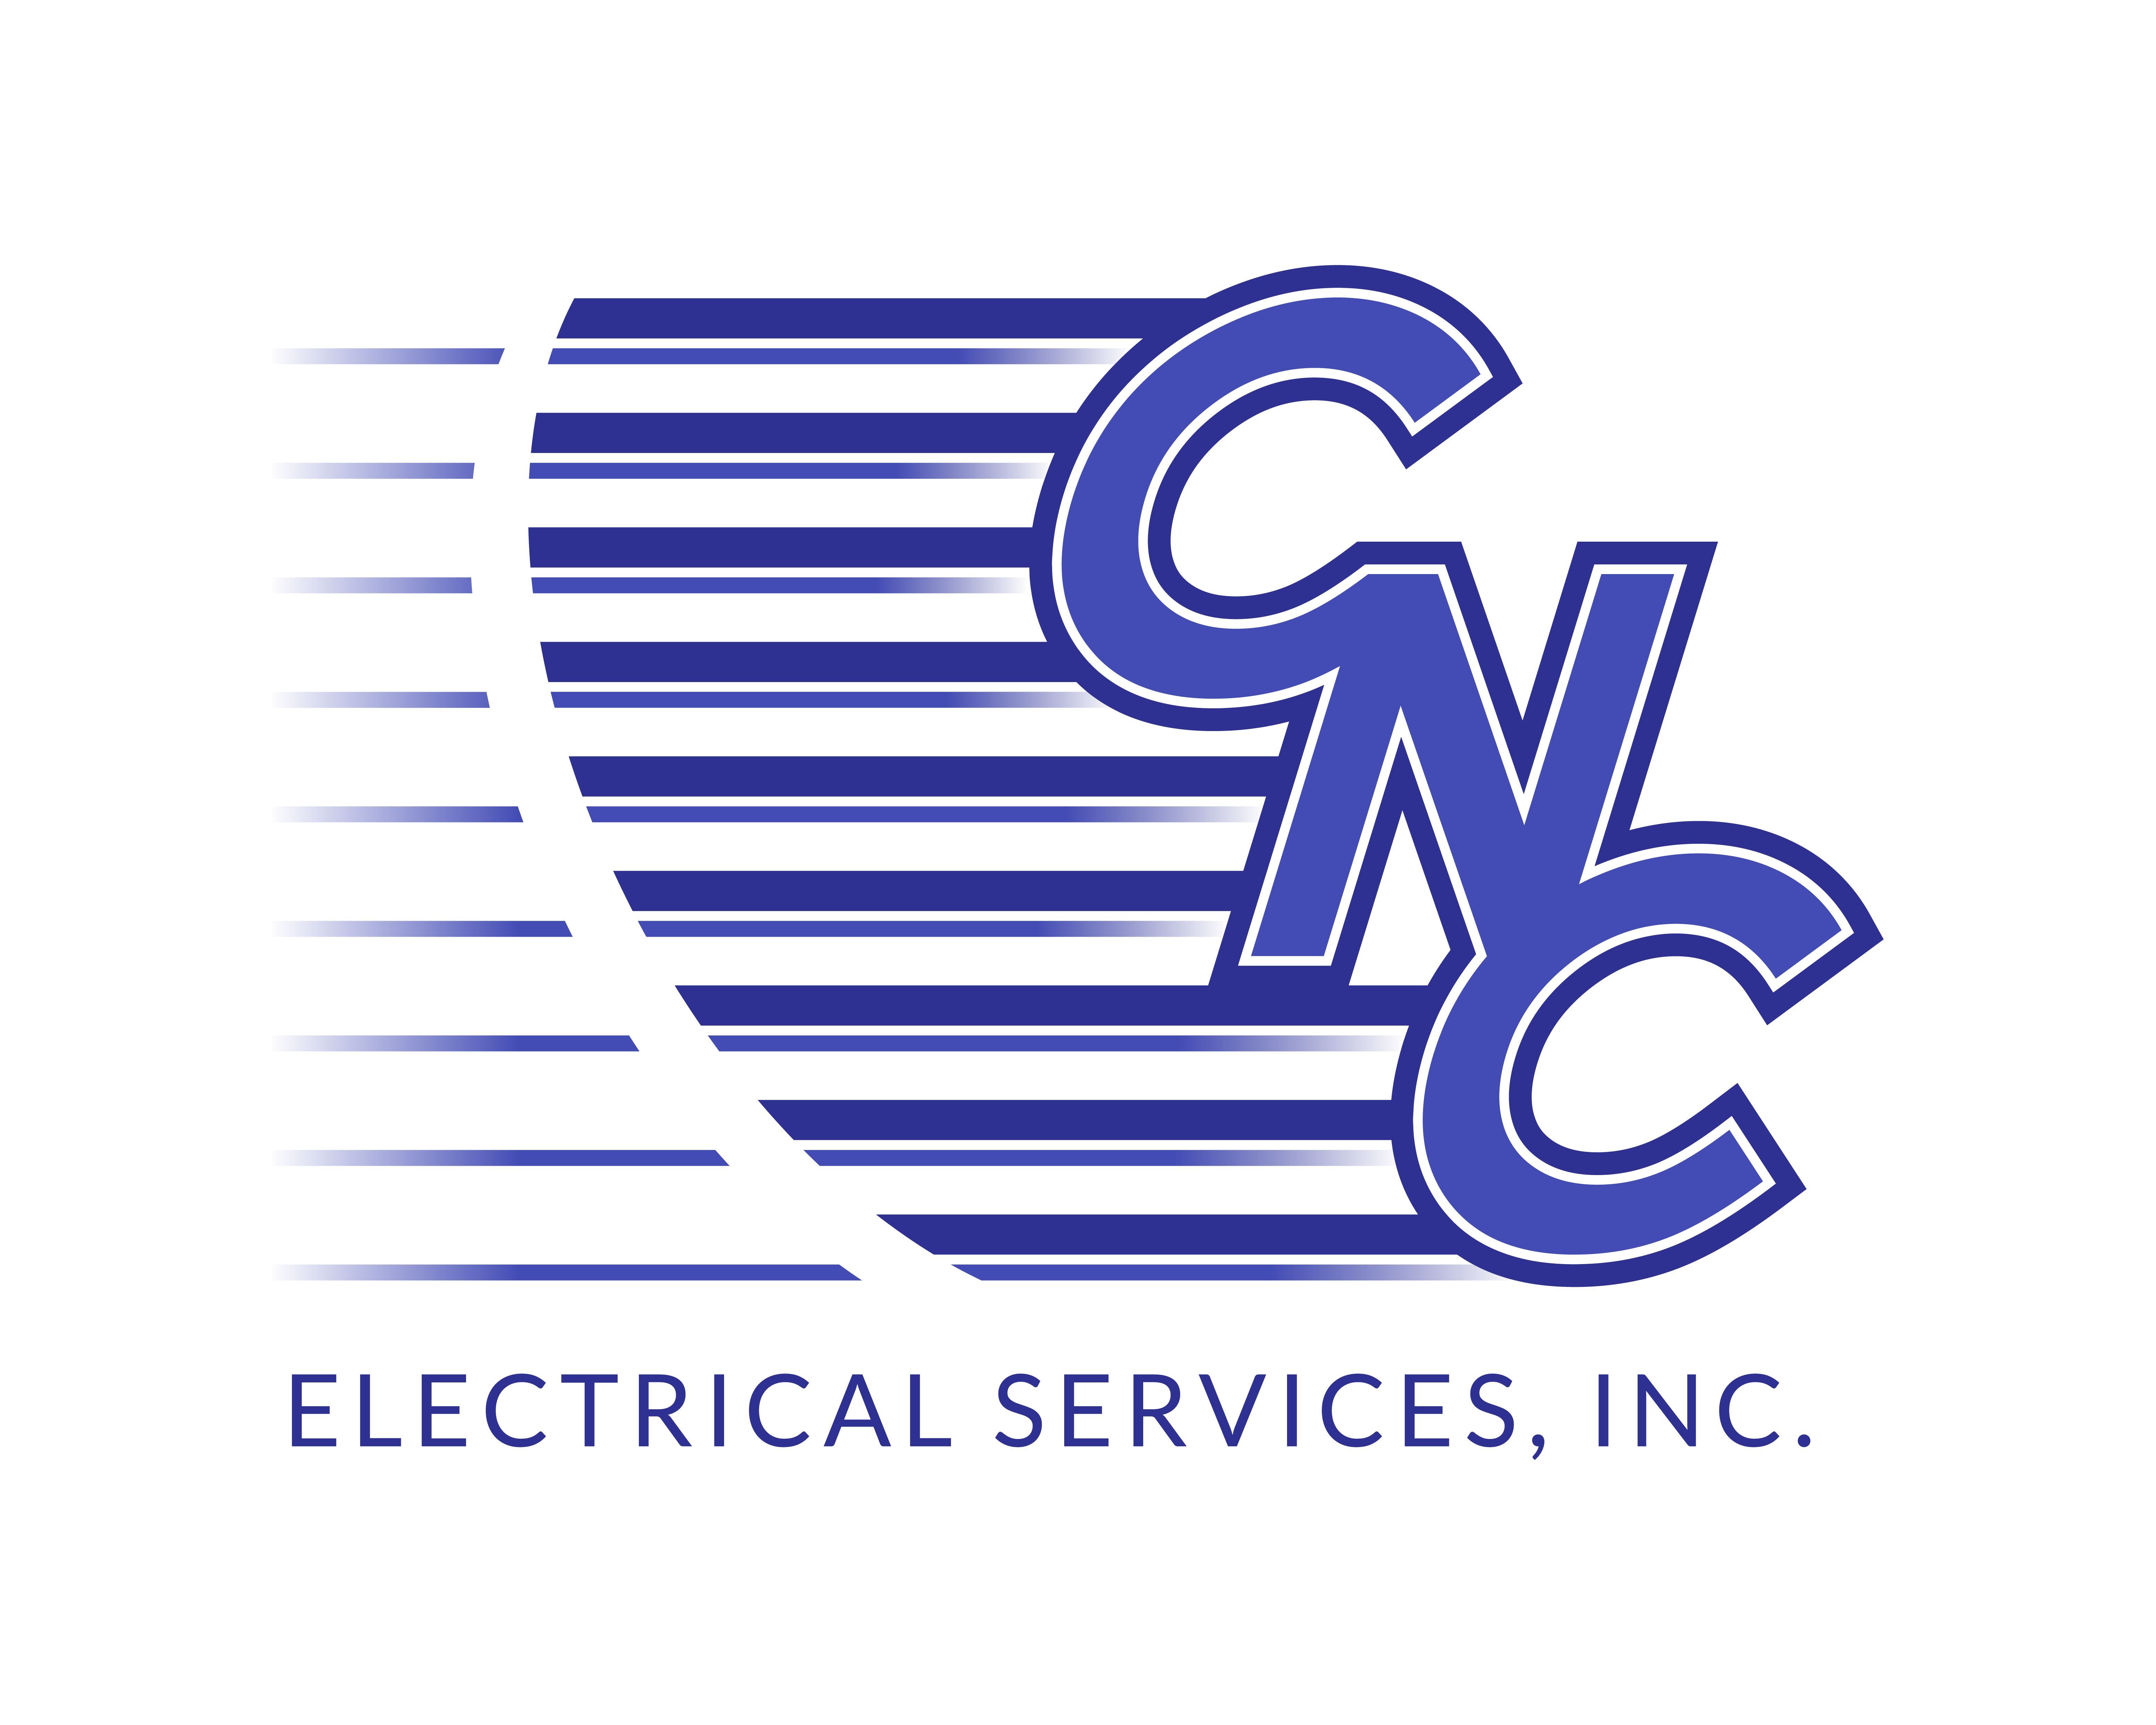 Update current logo with different company name.